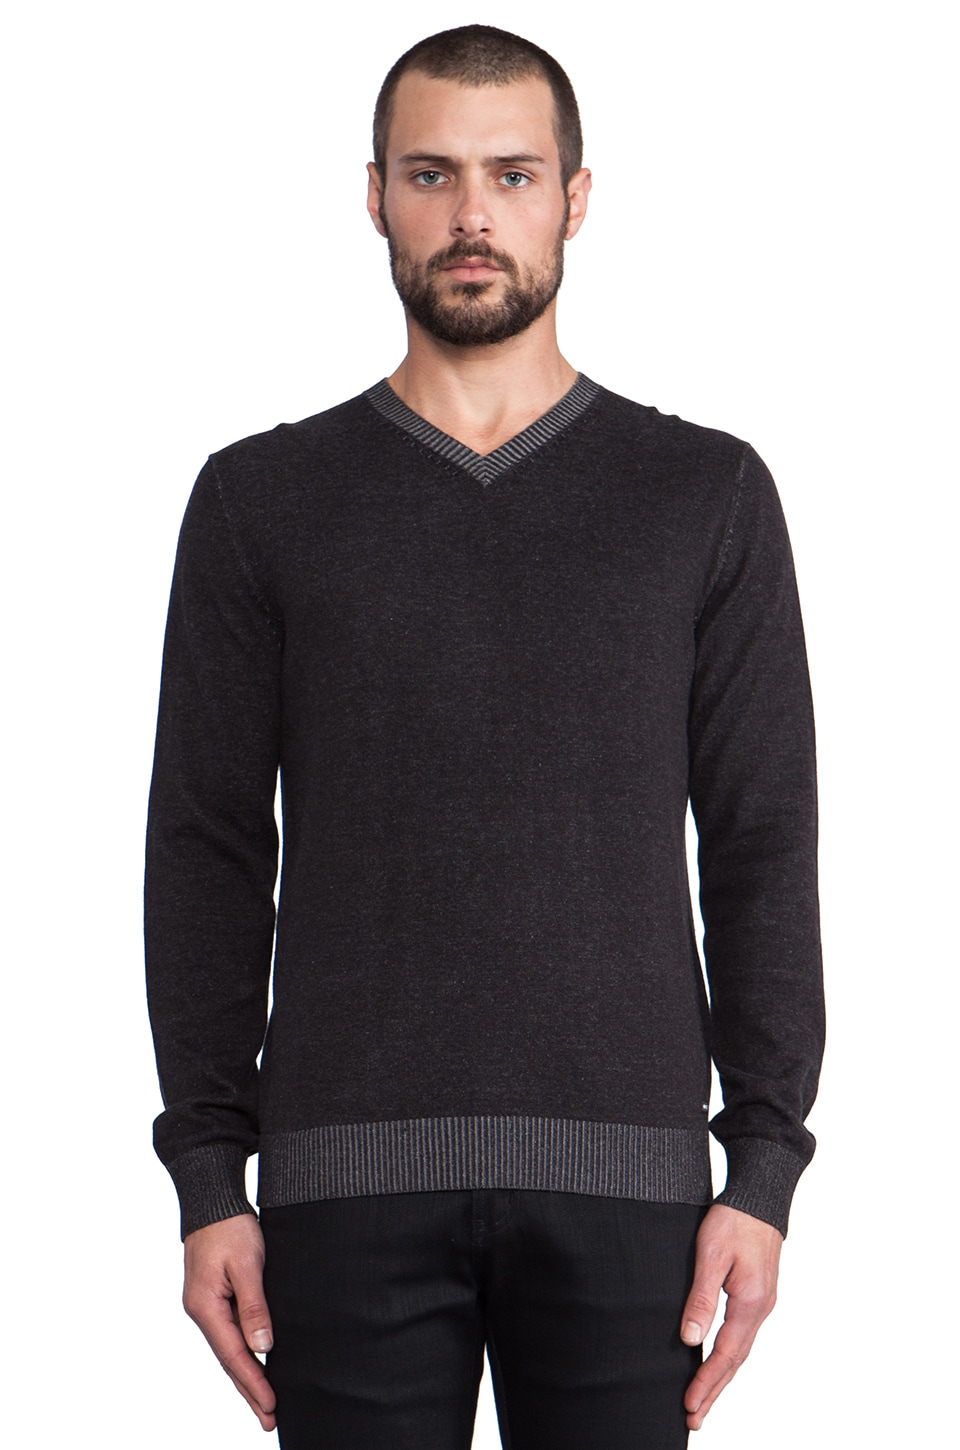 RVCA Plate Sweater V-Neck in Black